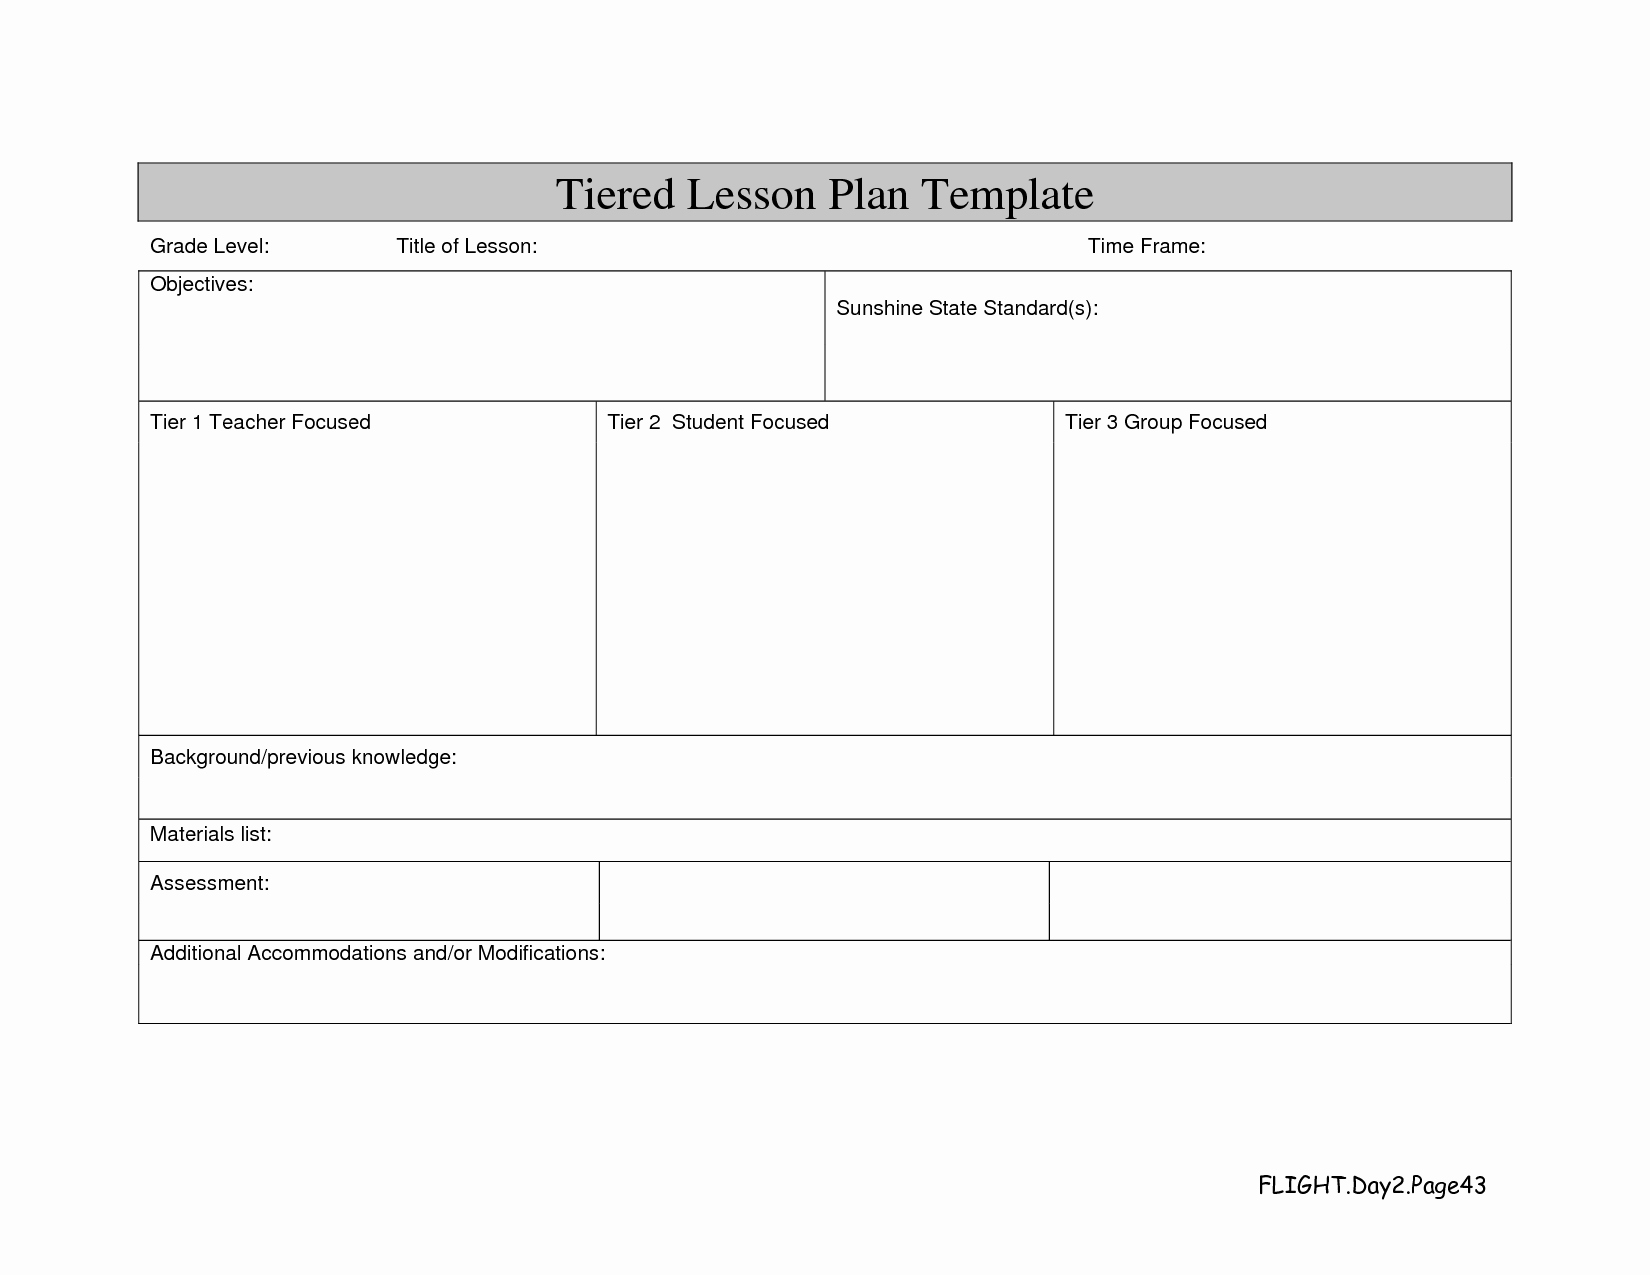 Differentiated Instruction Lesson Plan Template Awesome Differentiated Lesson Plan Template